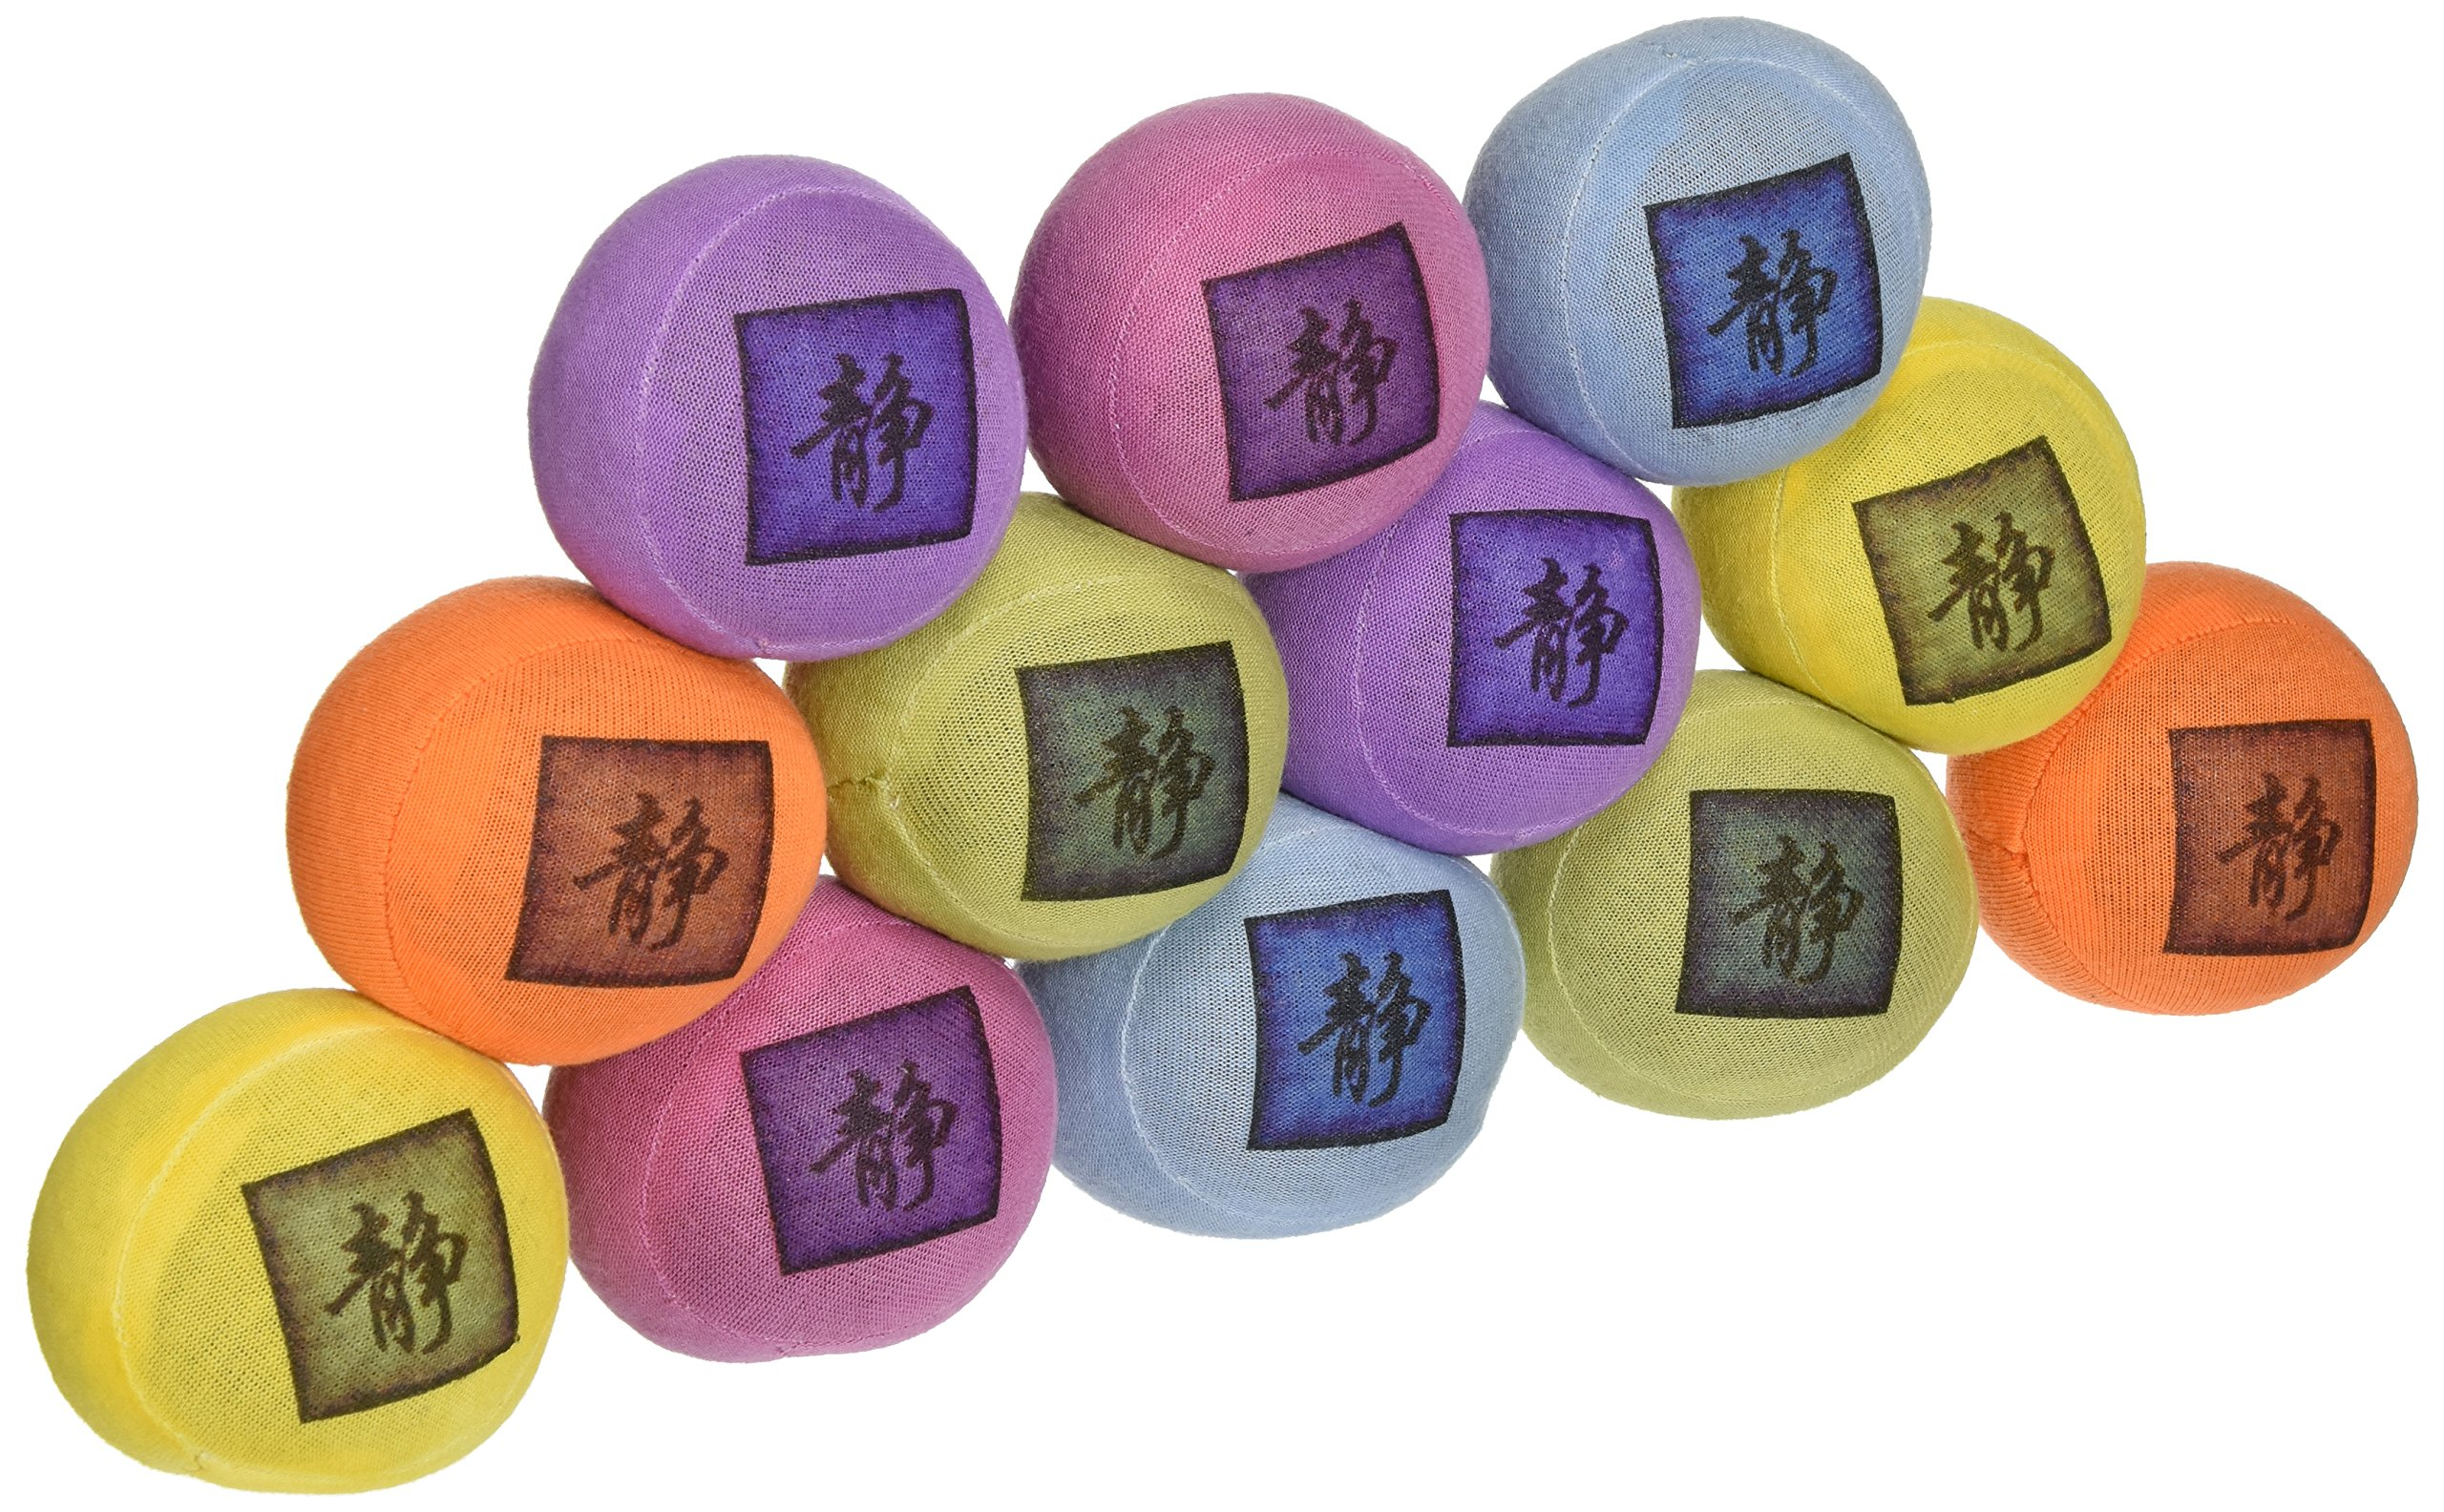 Lavender Luvies Lavender Stress Balls, Serenity - 12 Pack